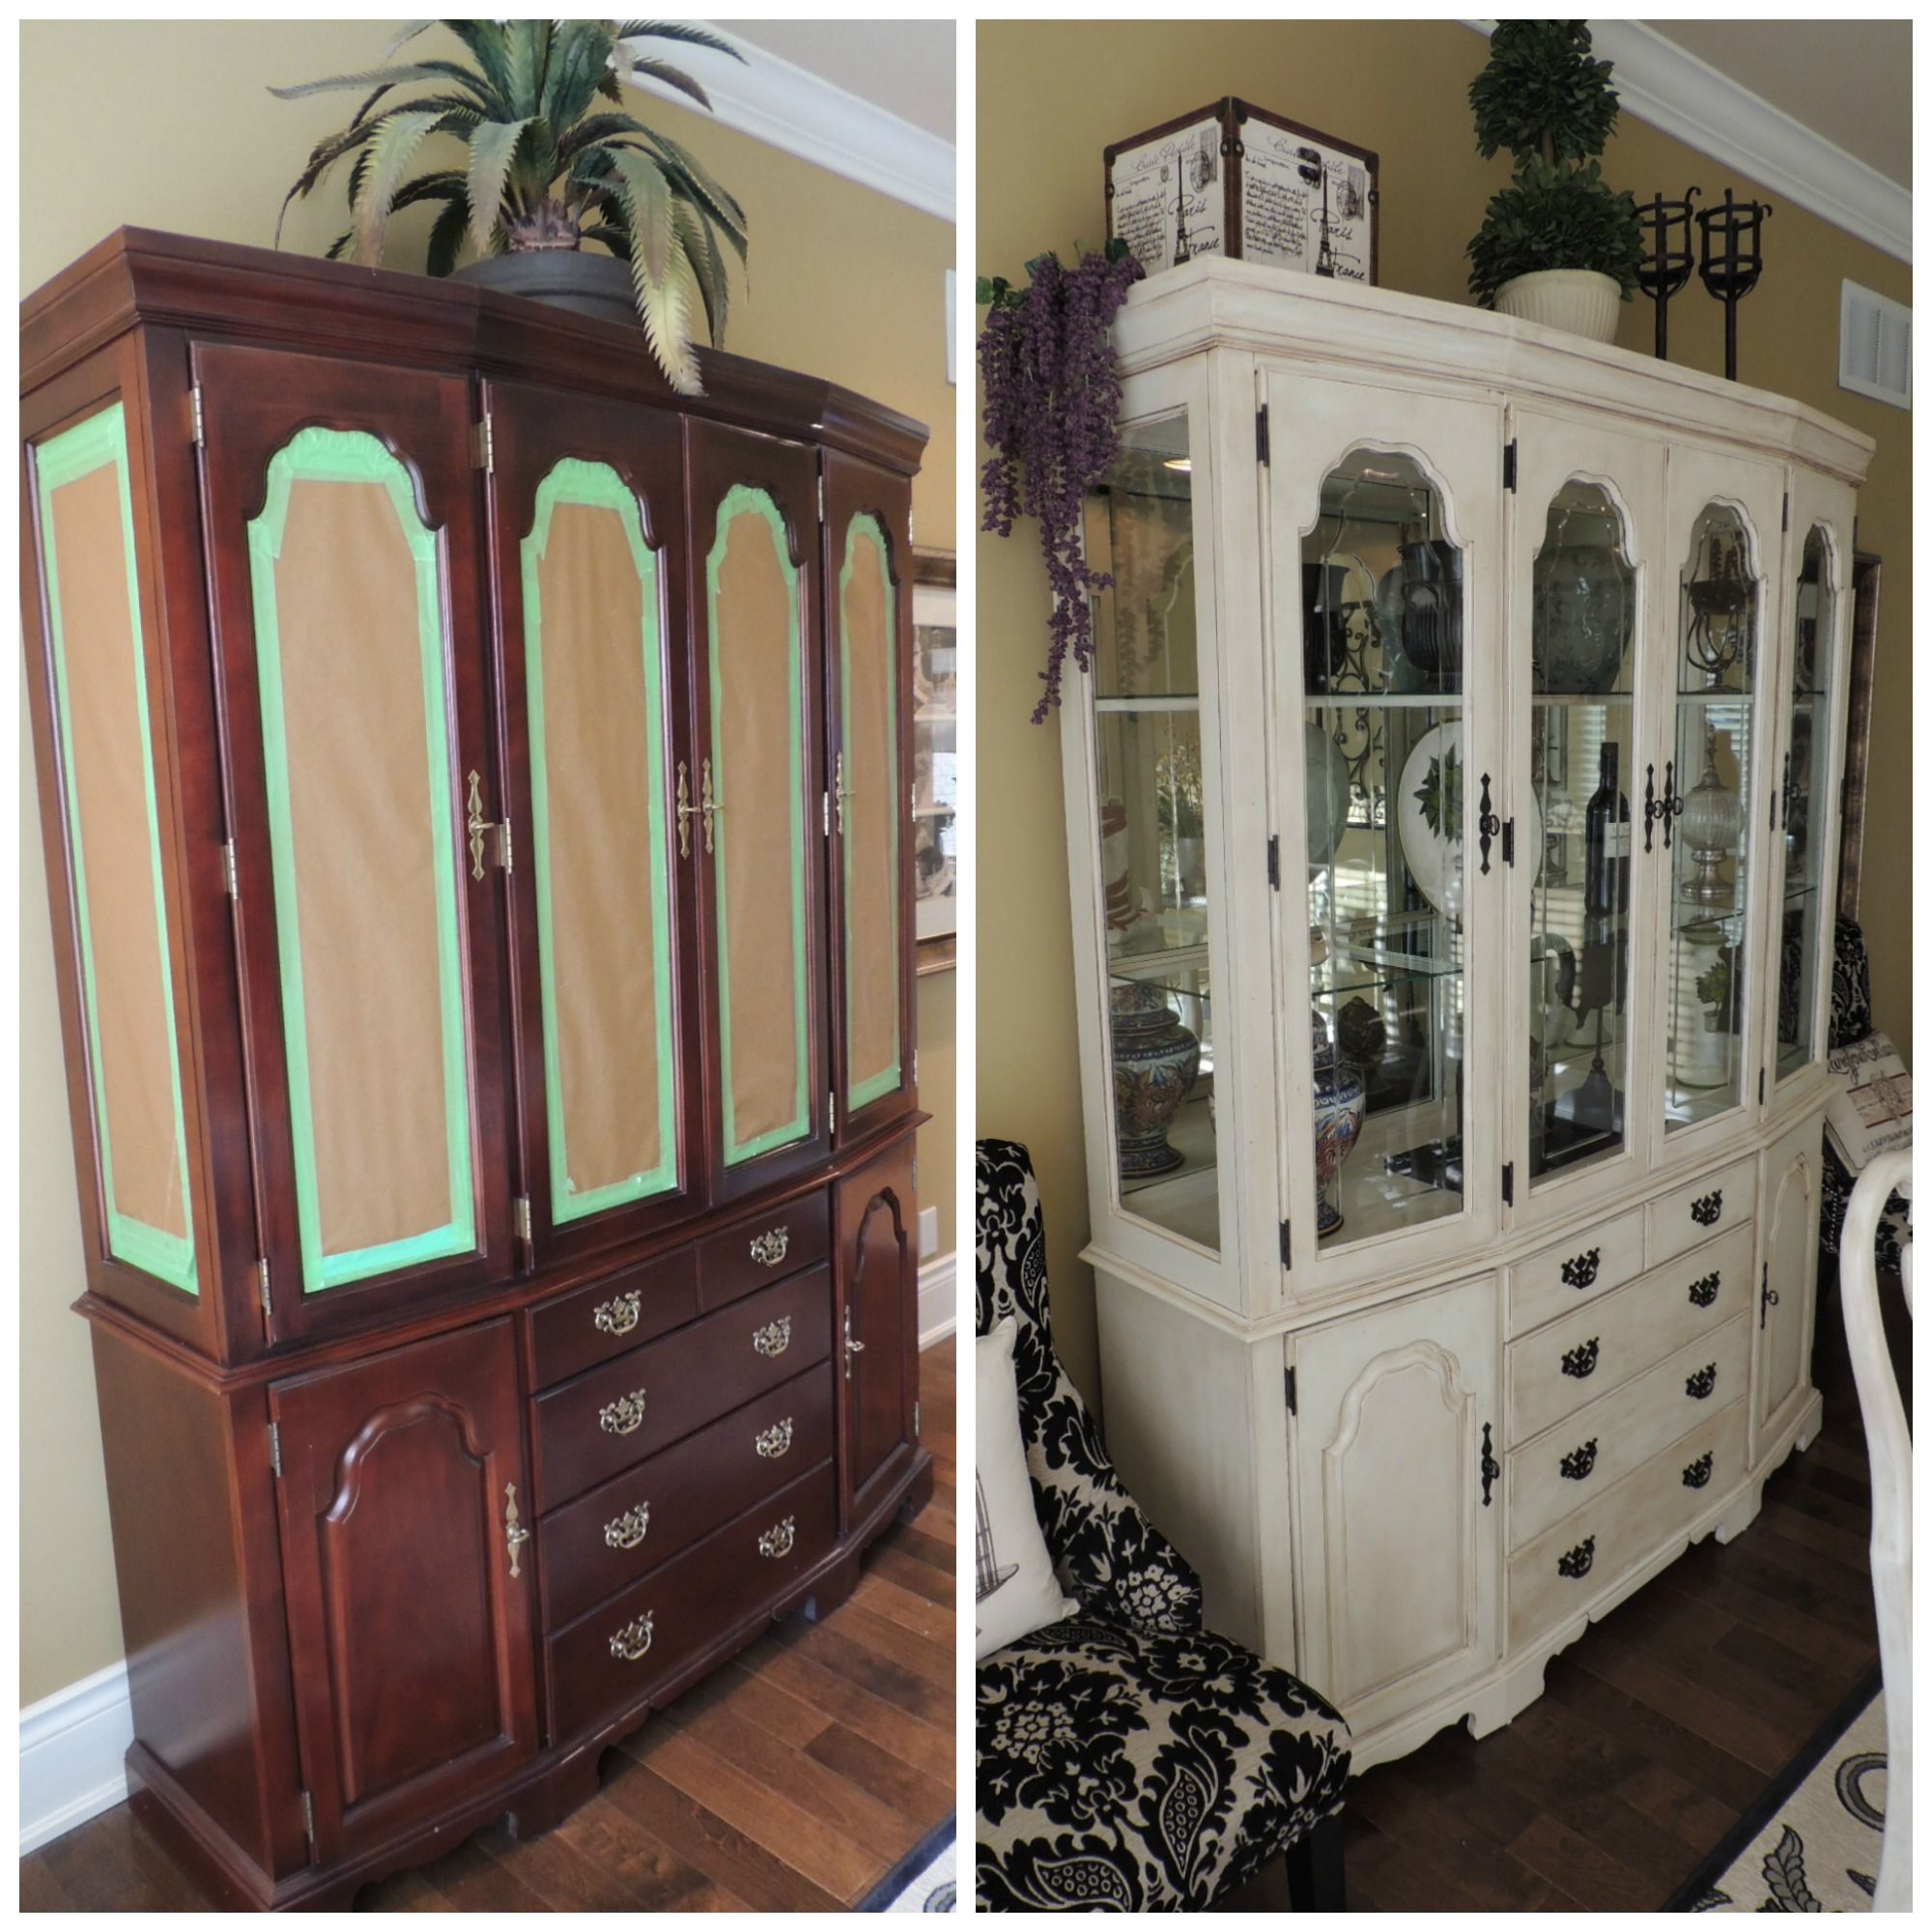 cabinet hutch above china purchased again i remiss was diy the original before furniture picture a housematekate with taking dresser finish refinished refinishing in conjunction this dsc